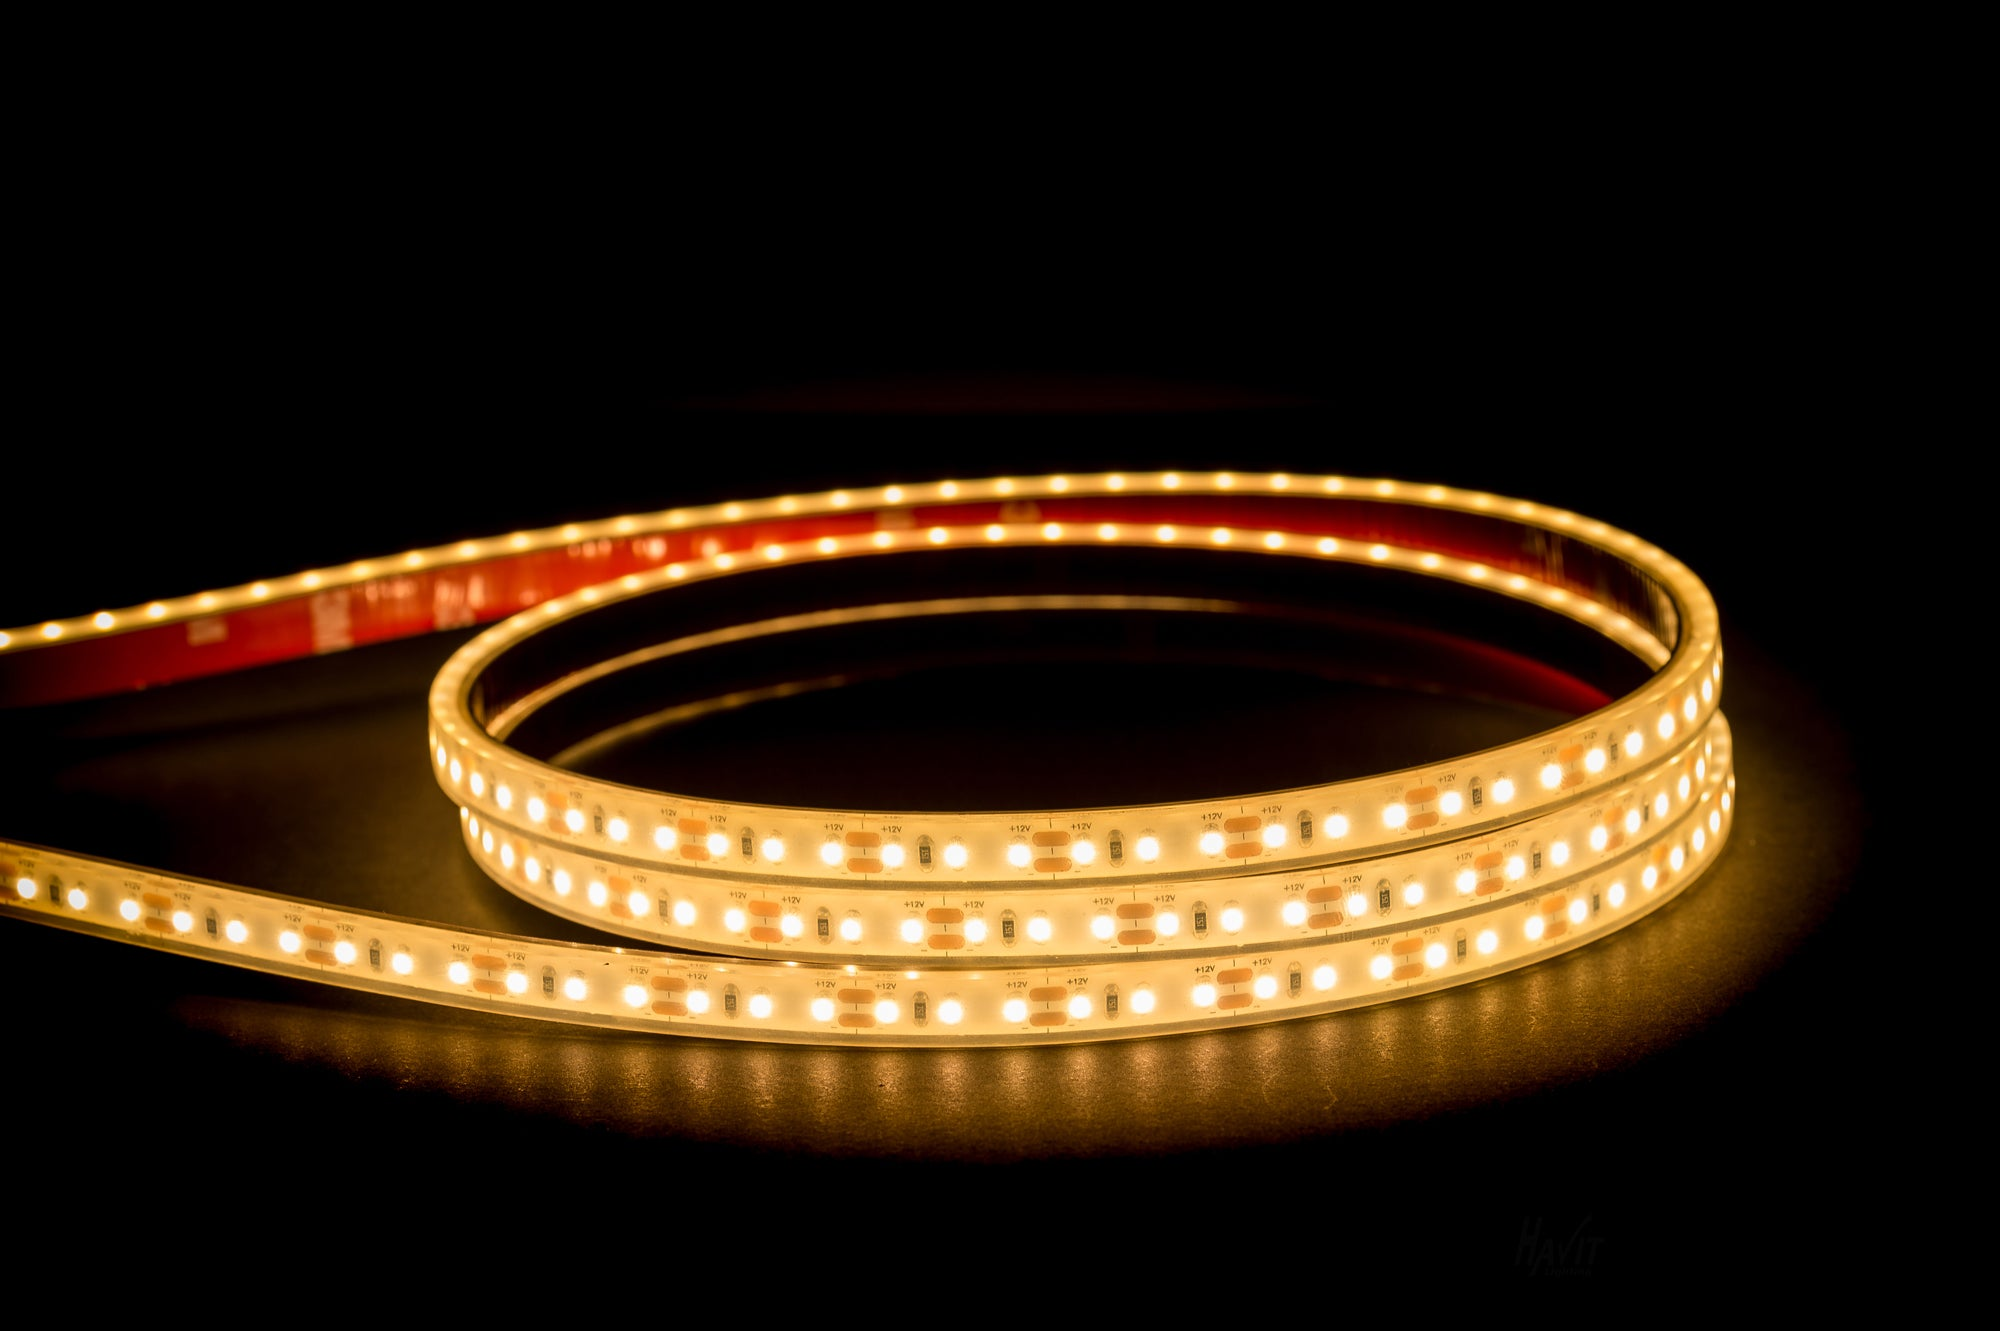 HV9723-IP67-120-3K - 9.6w 12v DC IP67 LED Strip 3000k